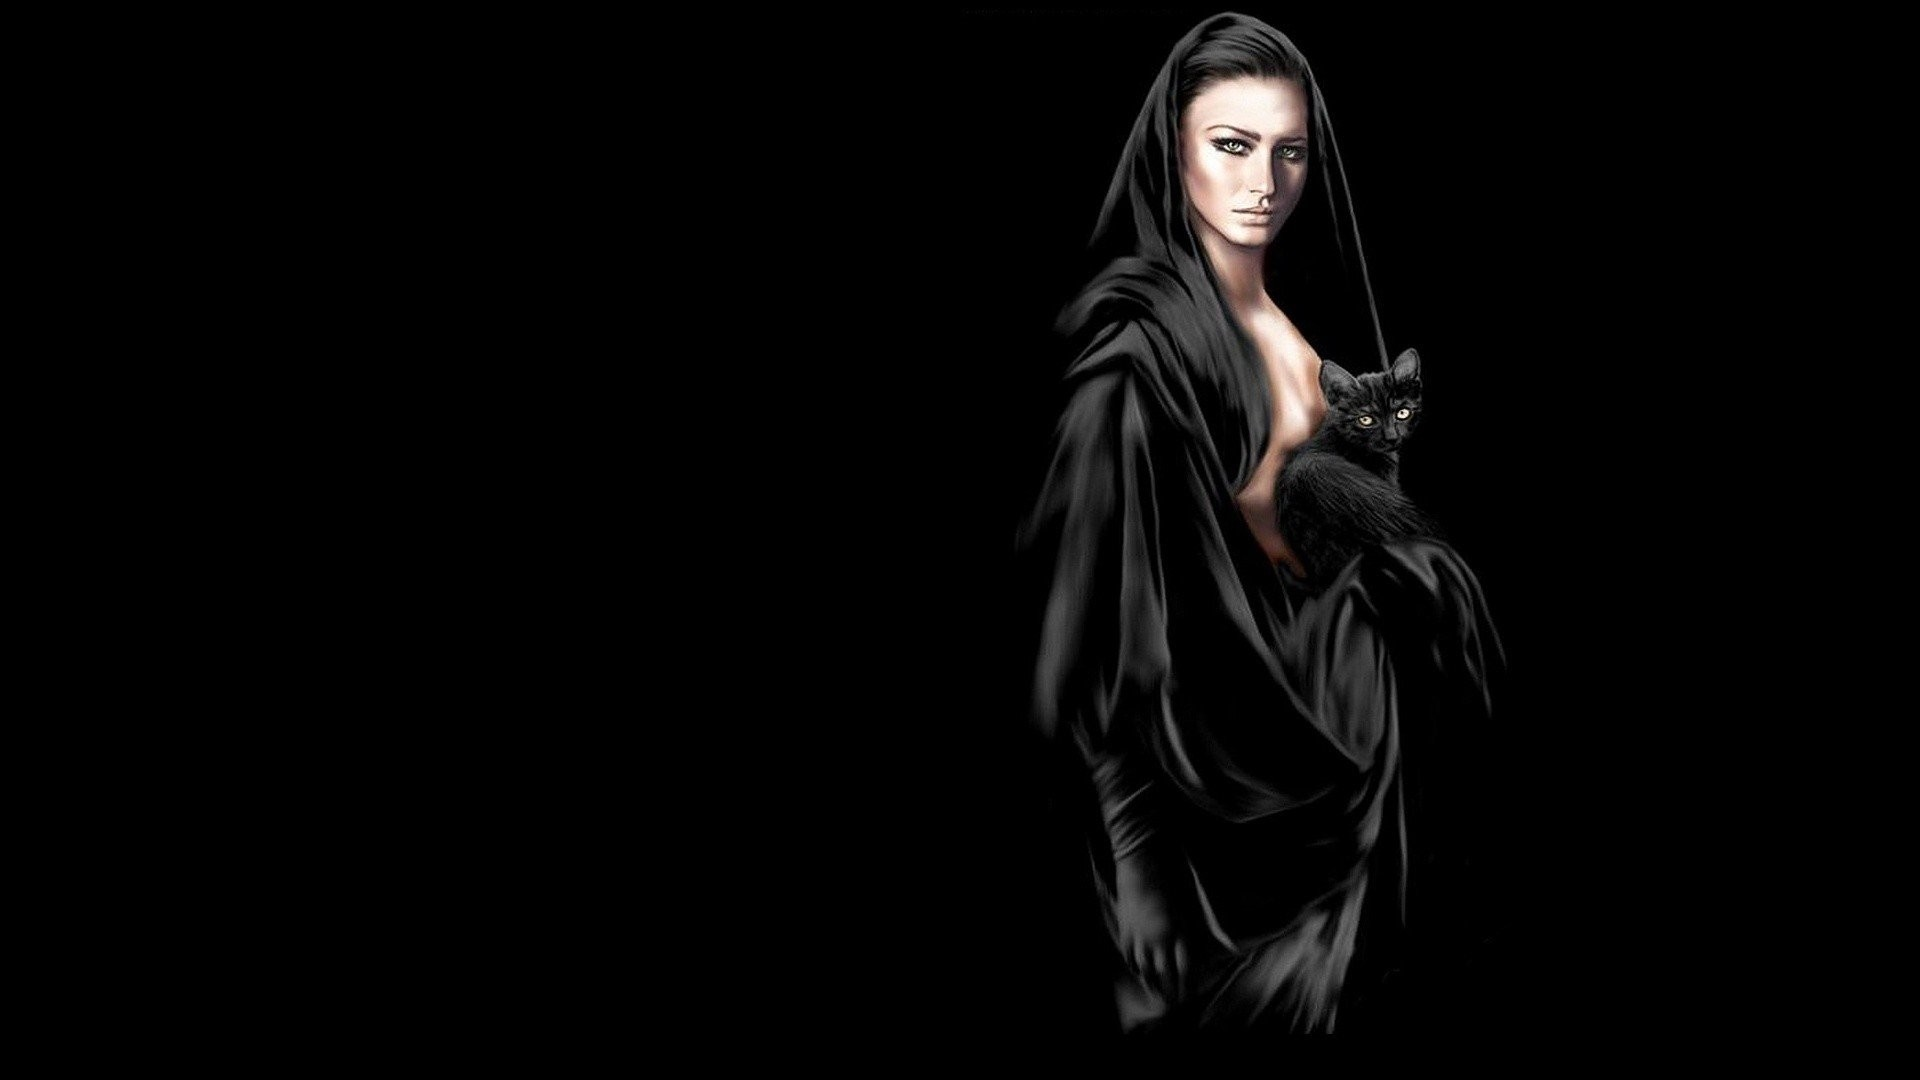 Res: 1920x1080, Lady Wallpapers